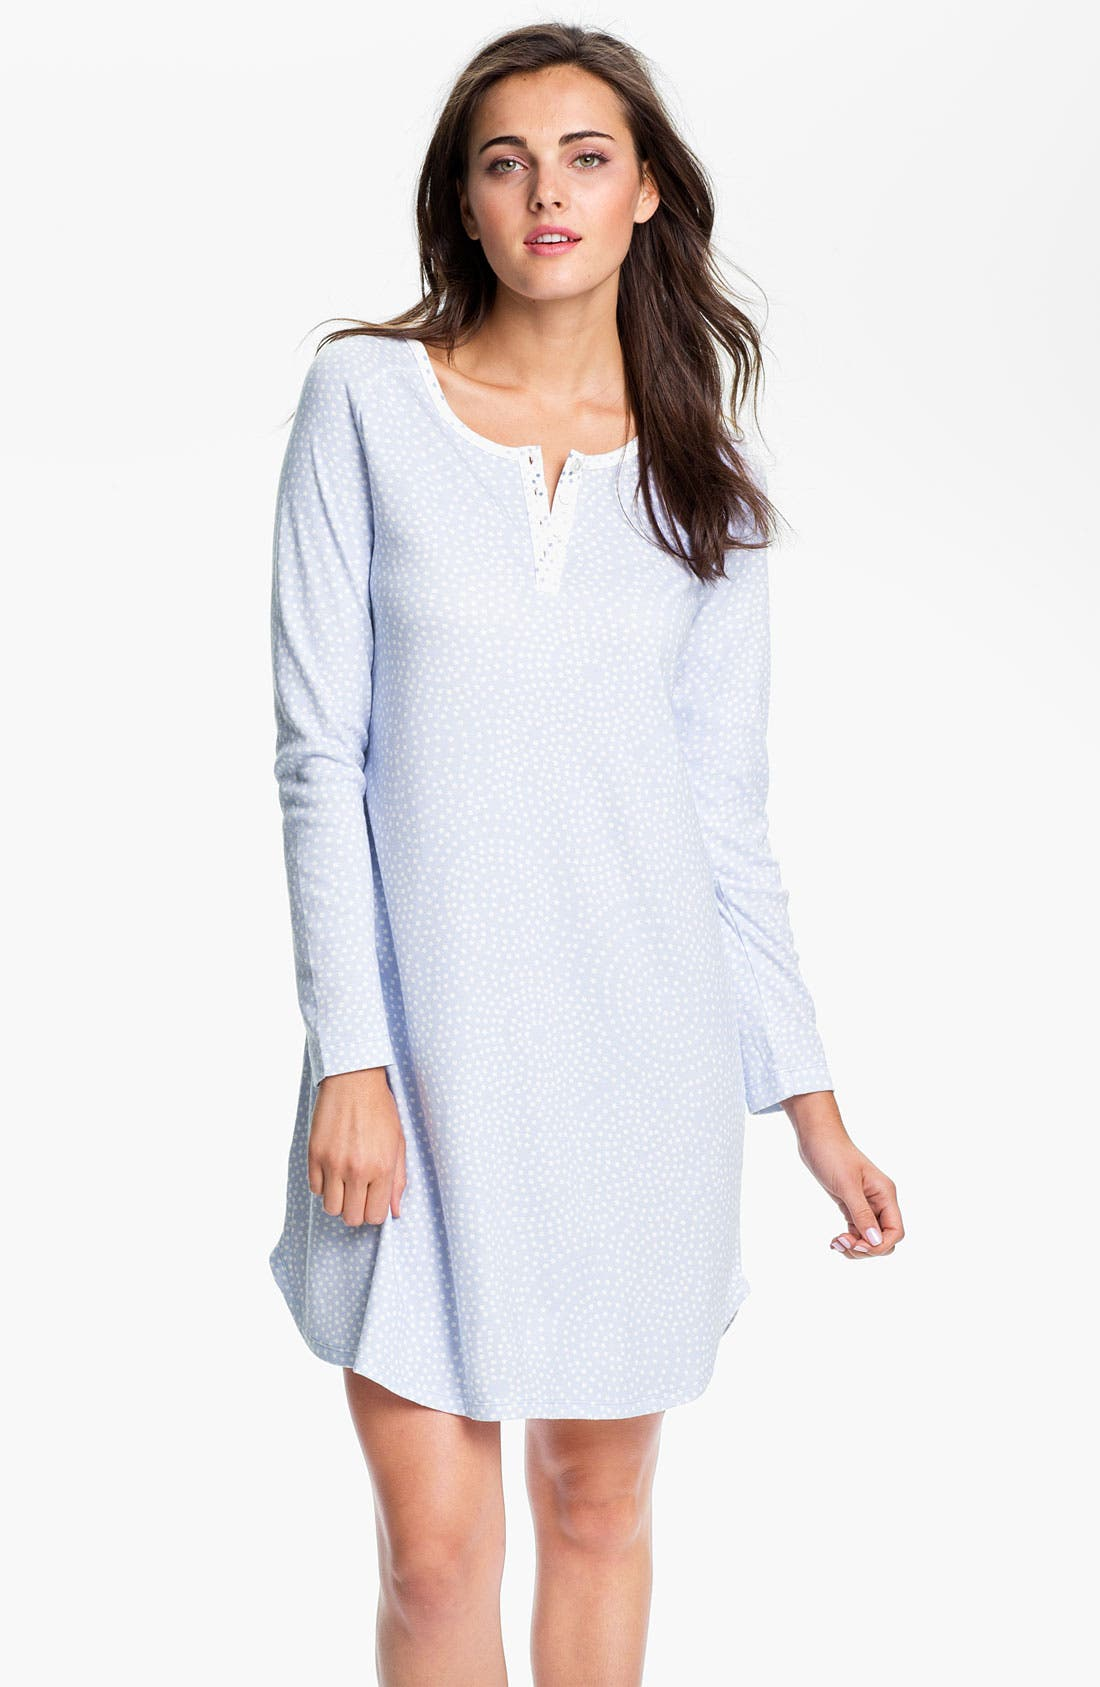 Alternate Image 1 Selected - Carole Hochman Designs Interlock Knit Sleep Shirt